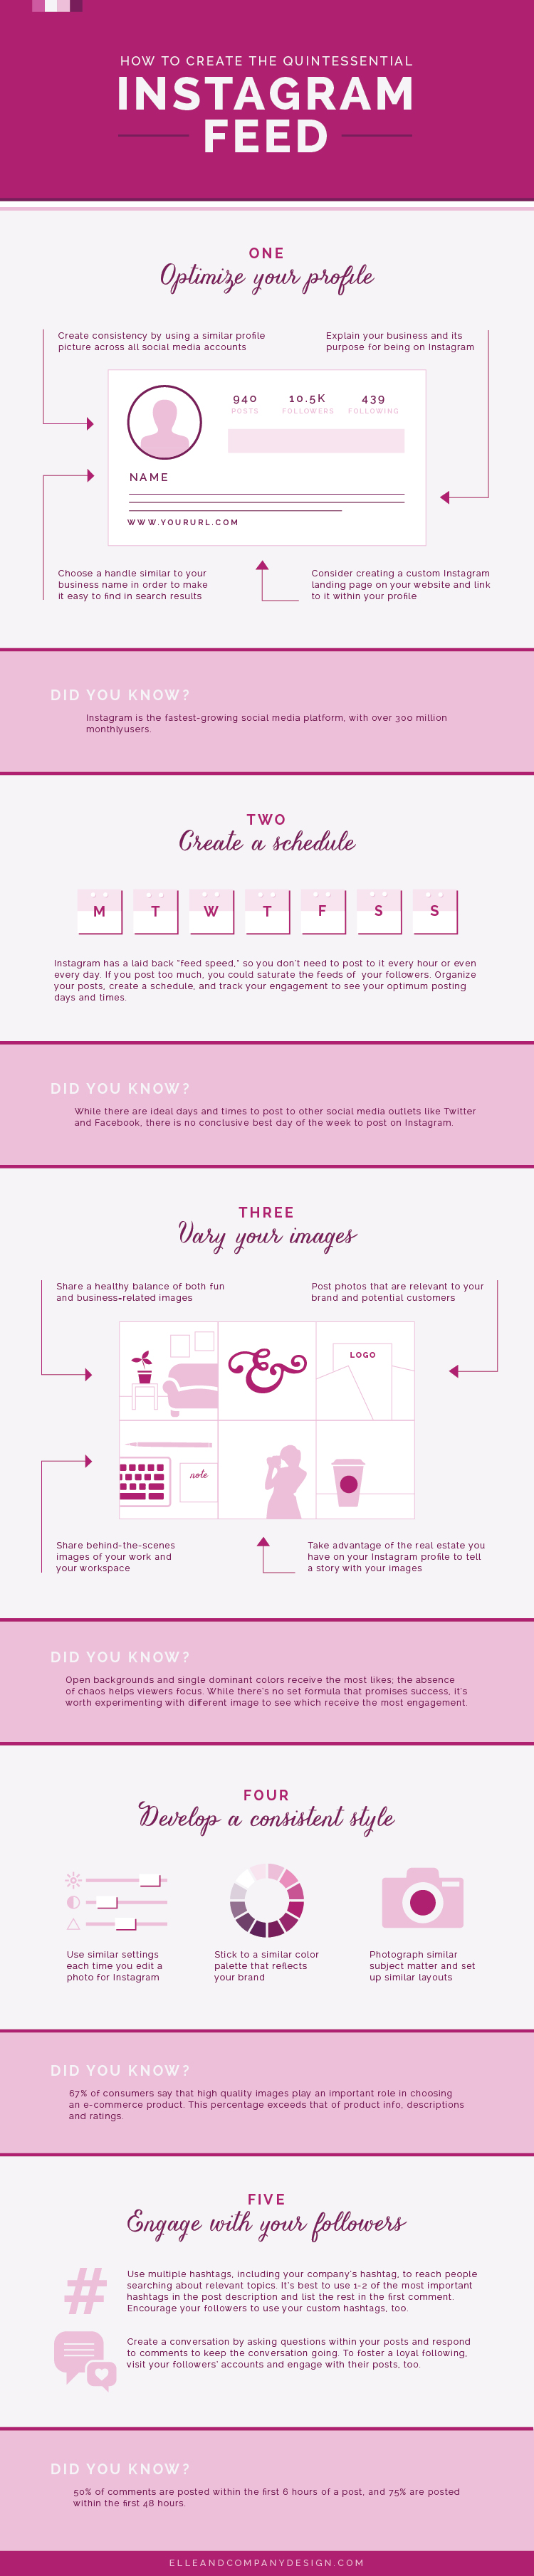 How to Create the Quintessential Instagram Feed | Elle & Company